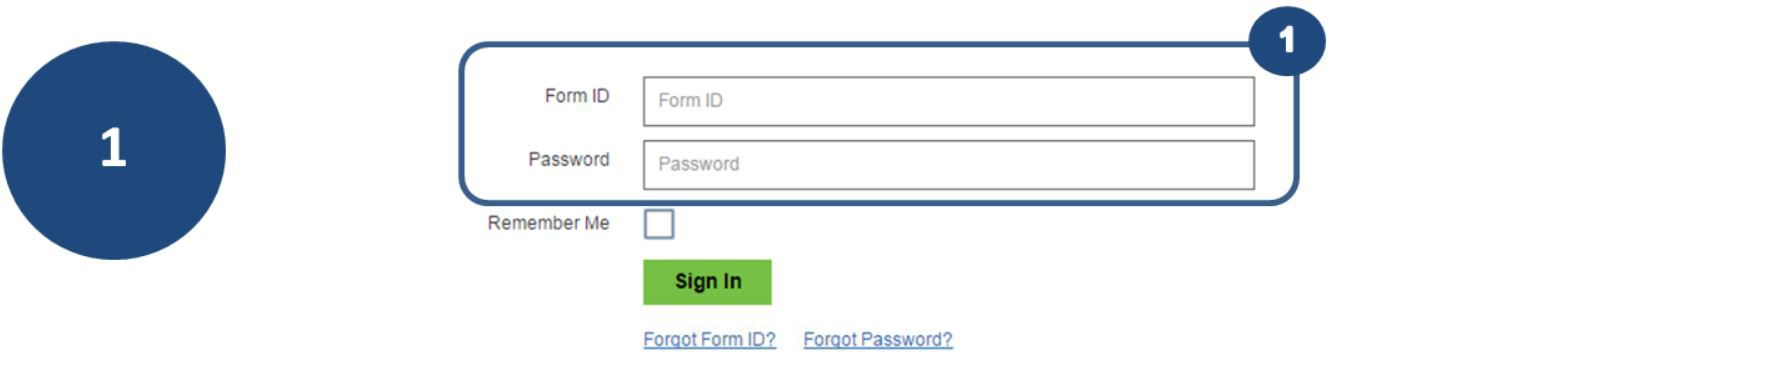 1. To view the status page, log in using your Form ID and Password.